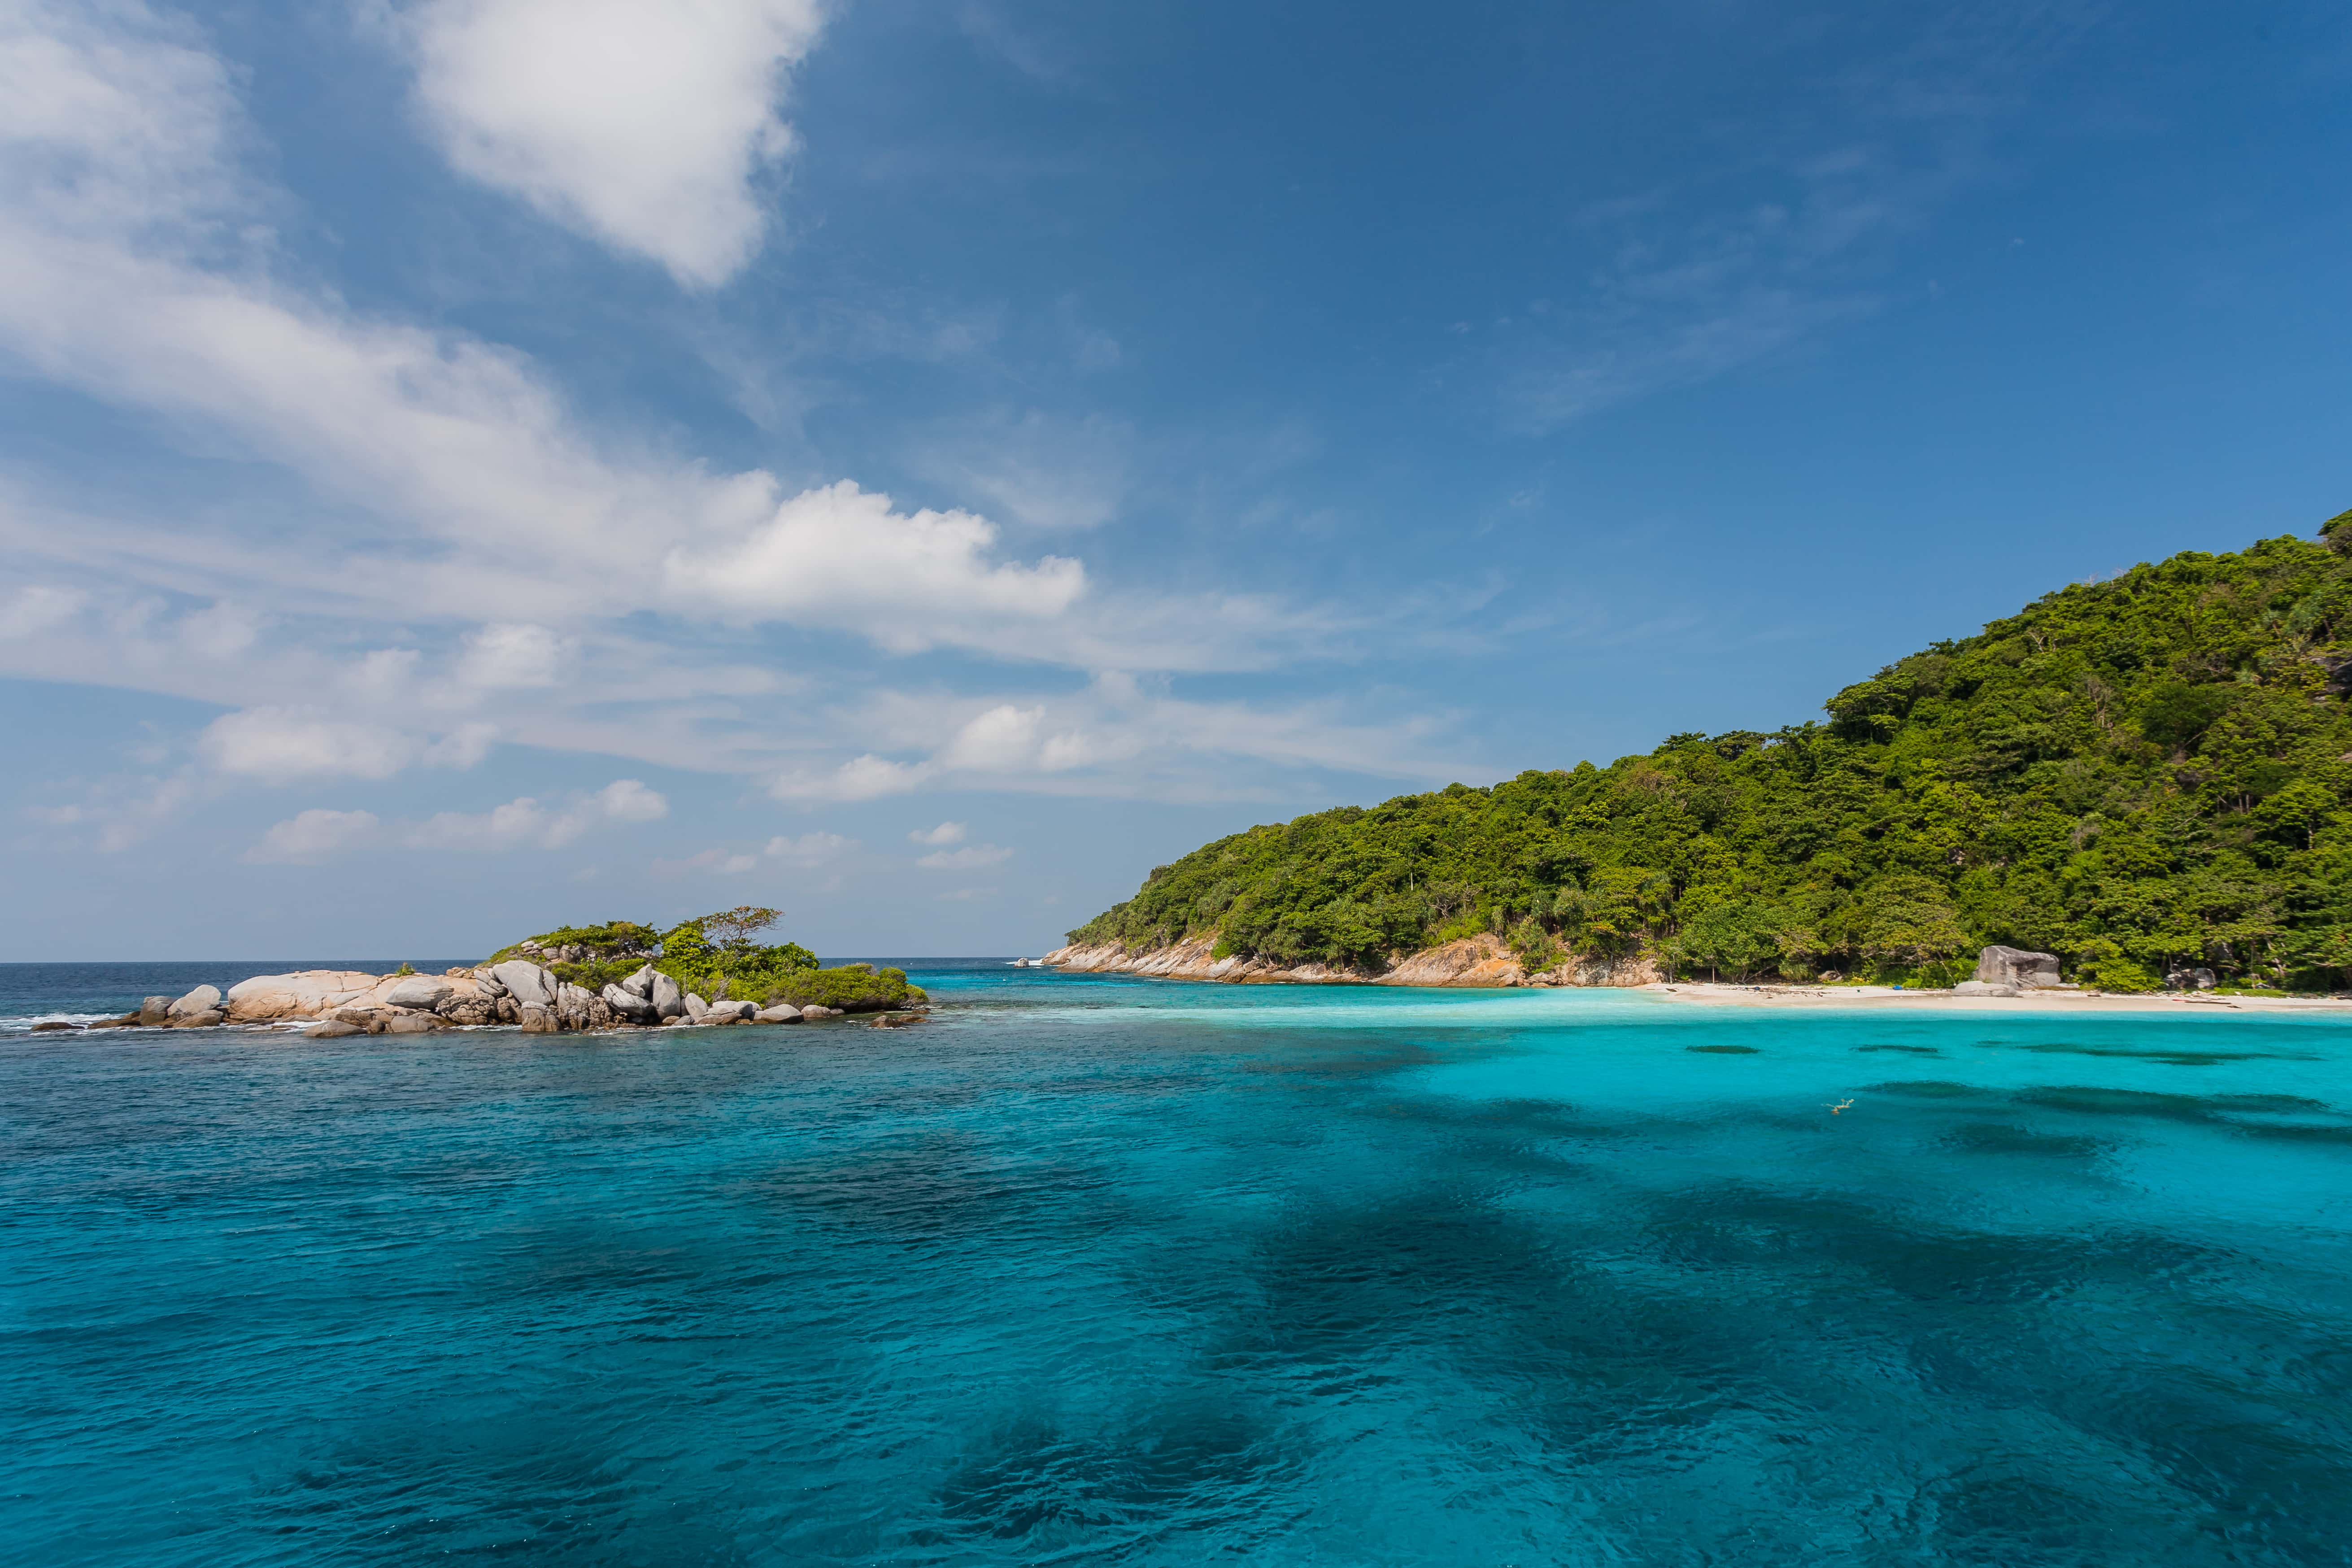 Racha Island Day Tour with Snorkeling and Discover Scuba Diving